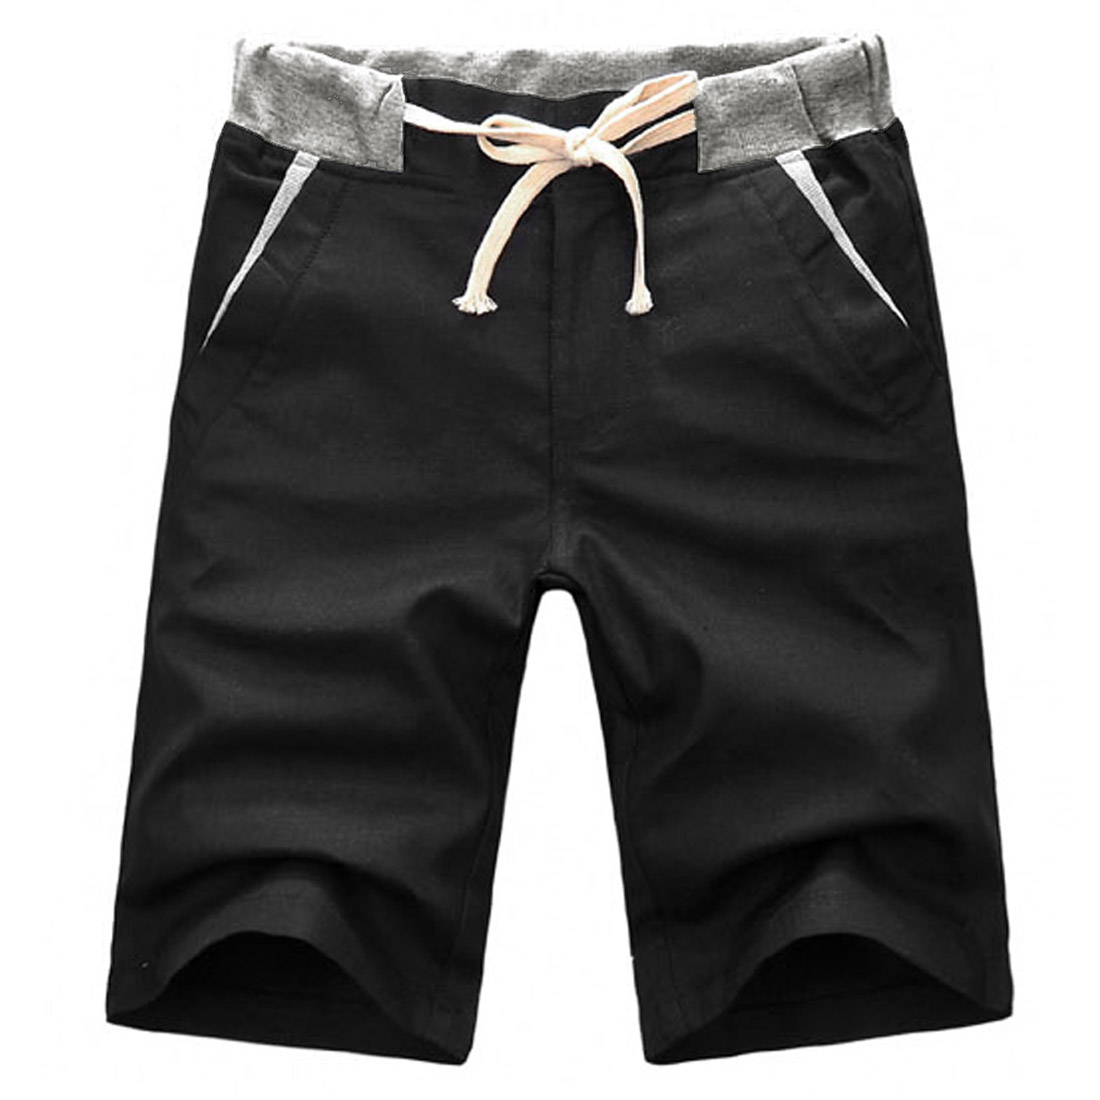 Men Zipper Fly Buttoned Closure Stretchy Waist Shorts Black W31